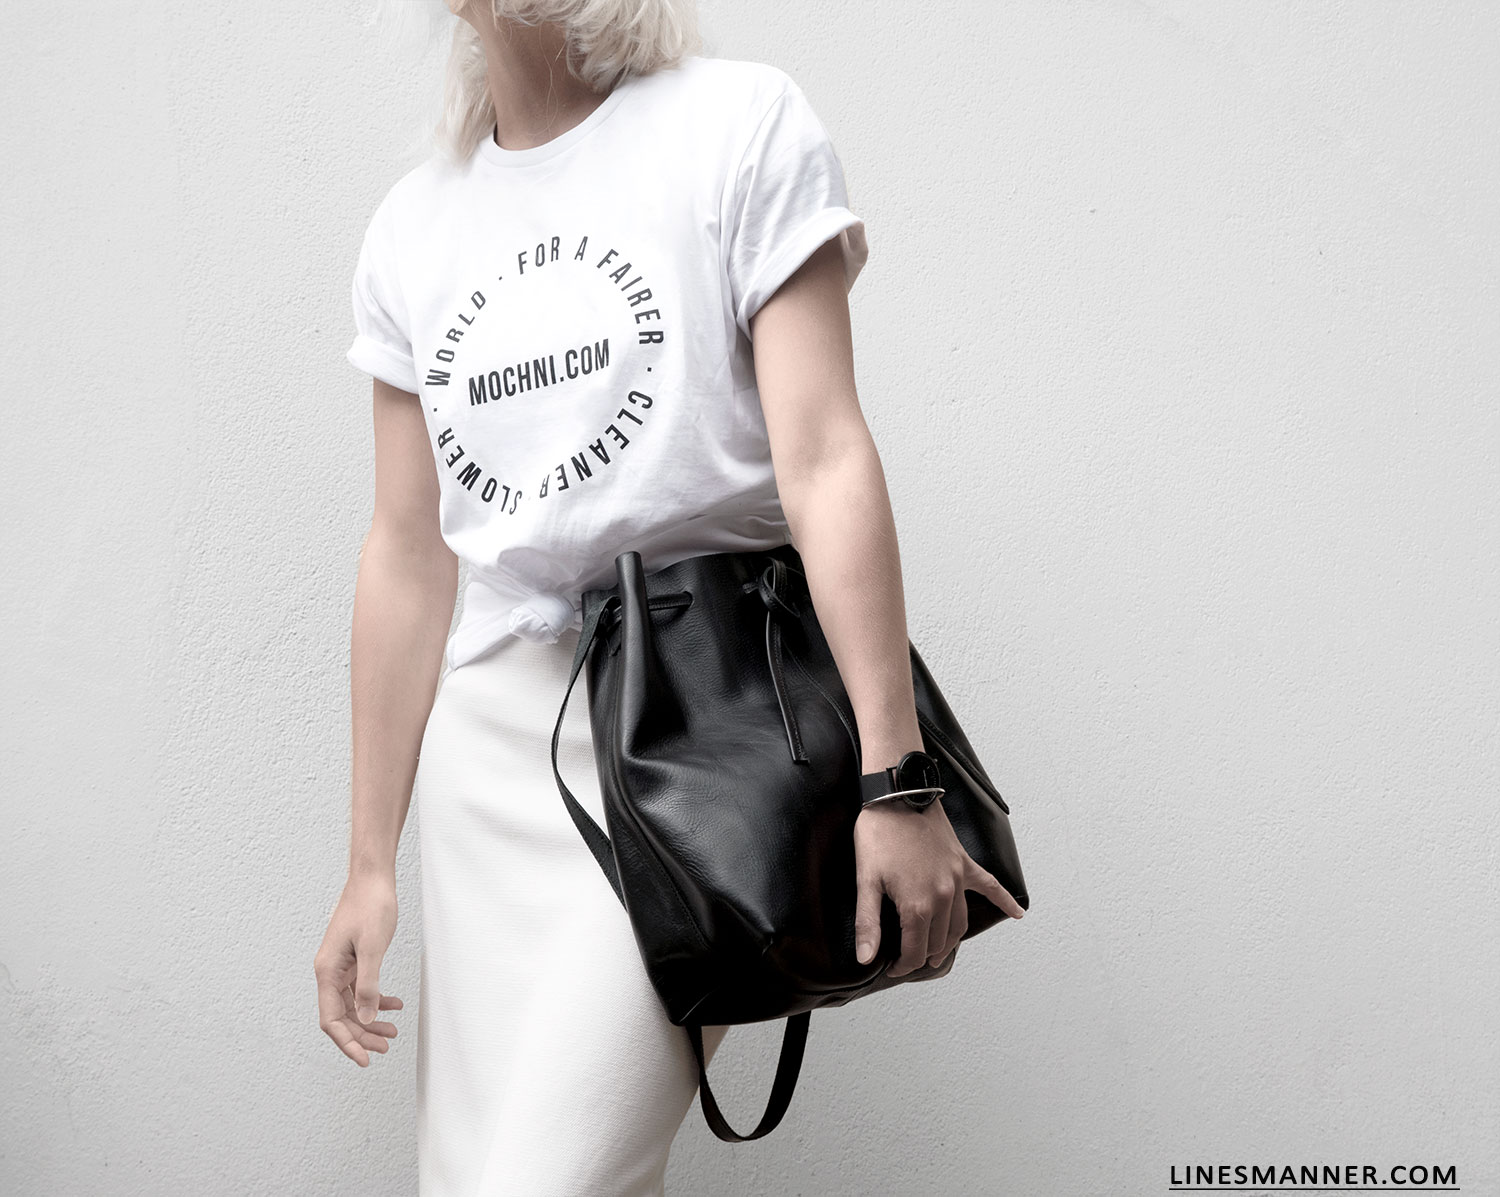 Lines-Manner-Mochni-Slow_Fashion_Plateform-Sustainable-Eco_Fashion-Awareness-Tee-Fairer-World-Conscious-Essentials-Minimal-Monochrome-Quality-Organic-4